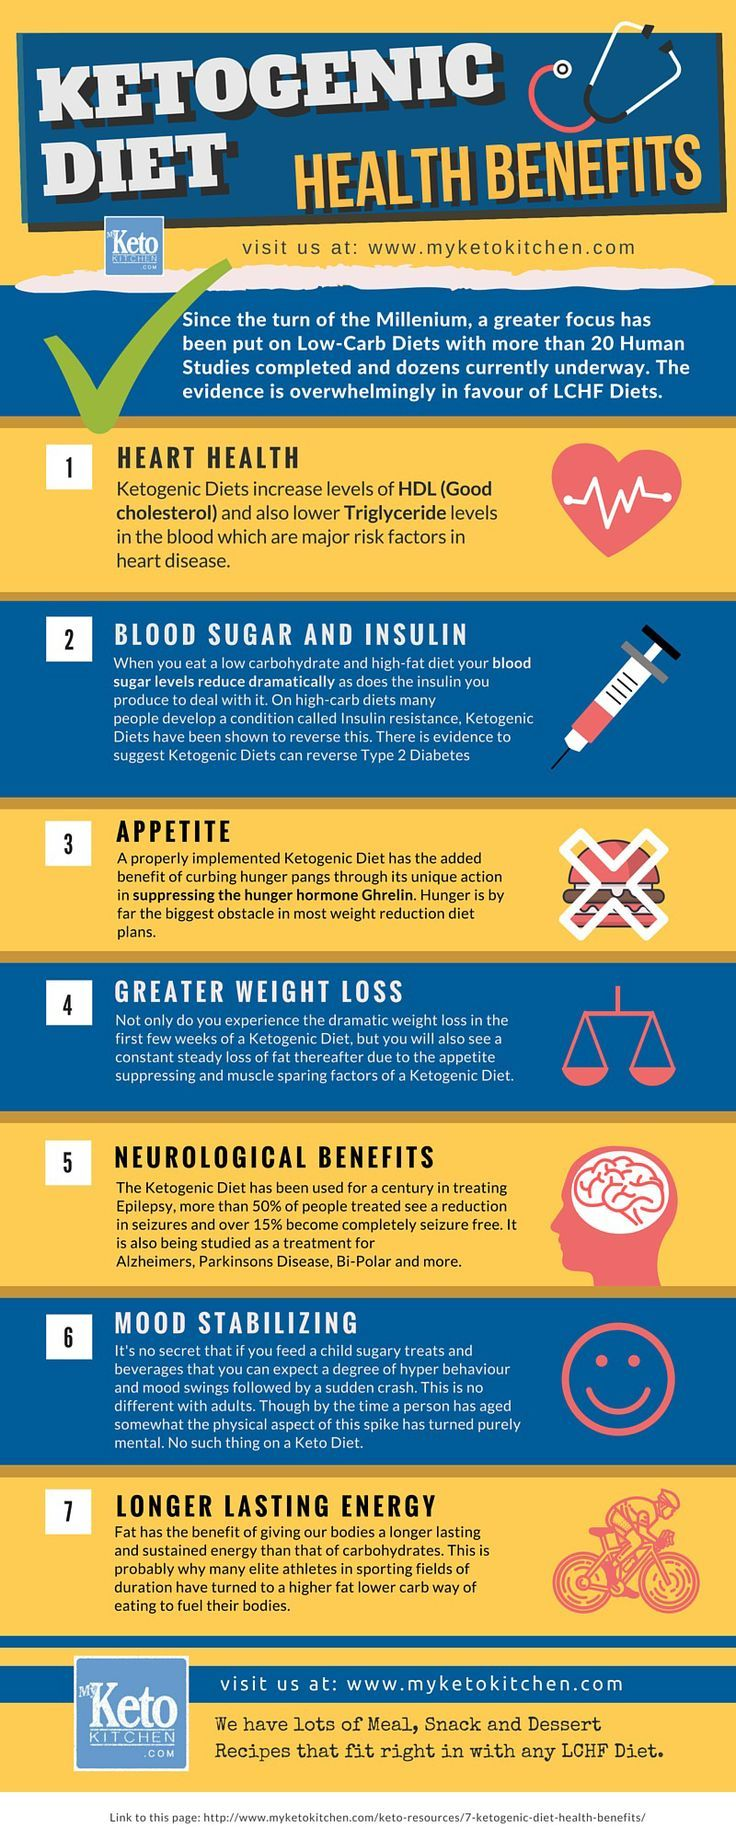 t3 or t4 better for weight loss